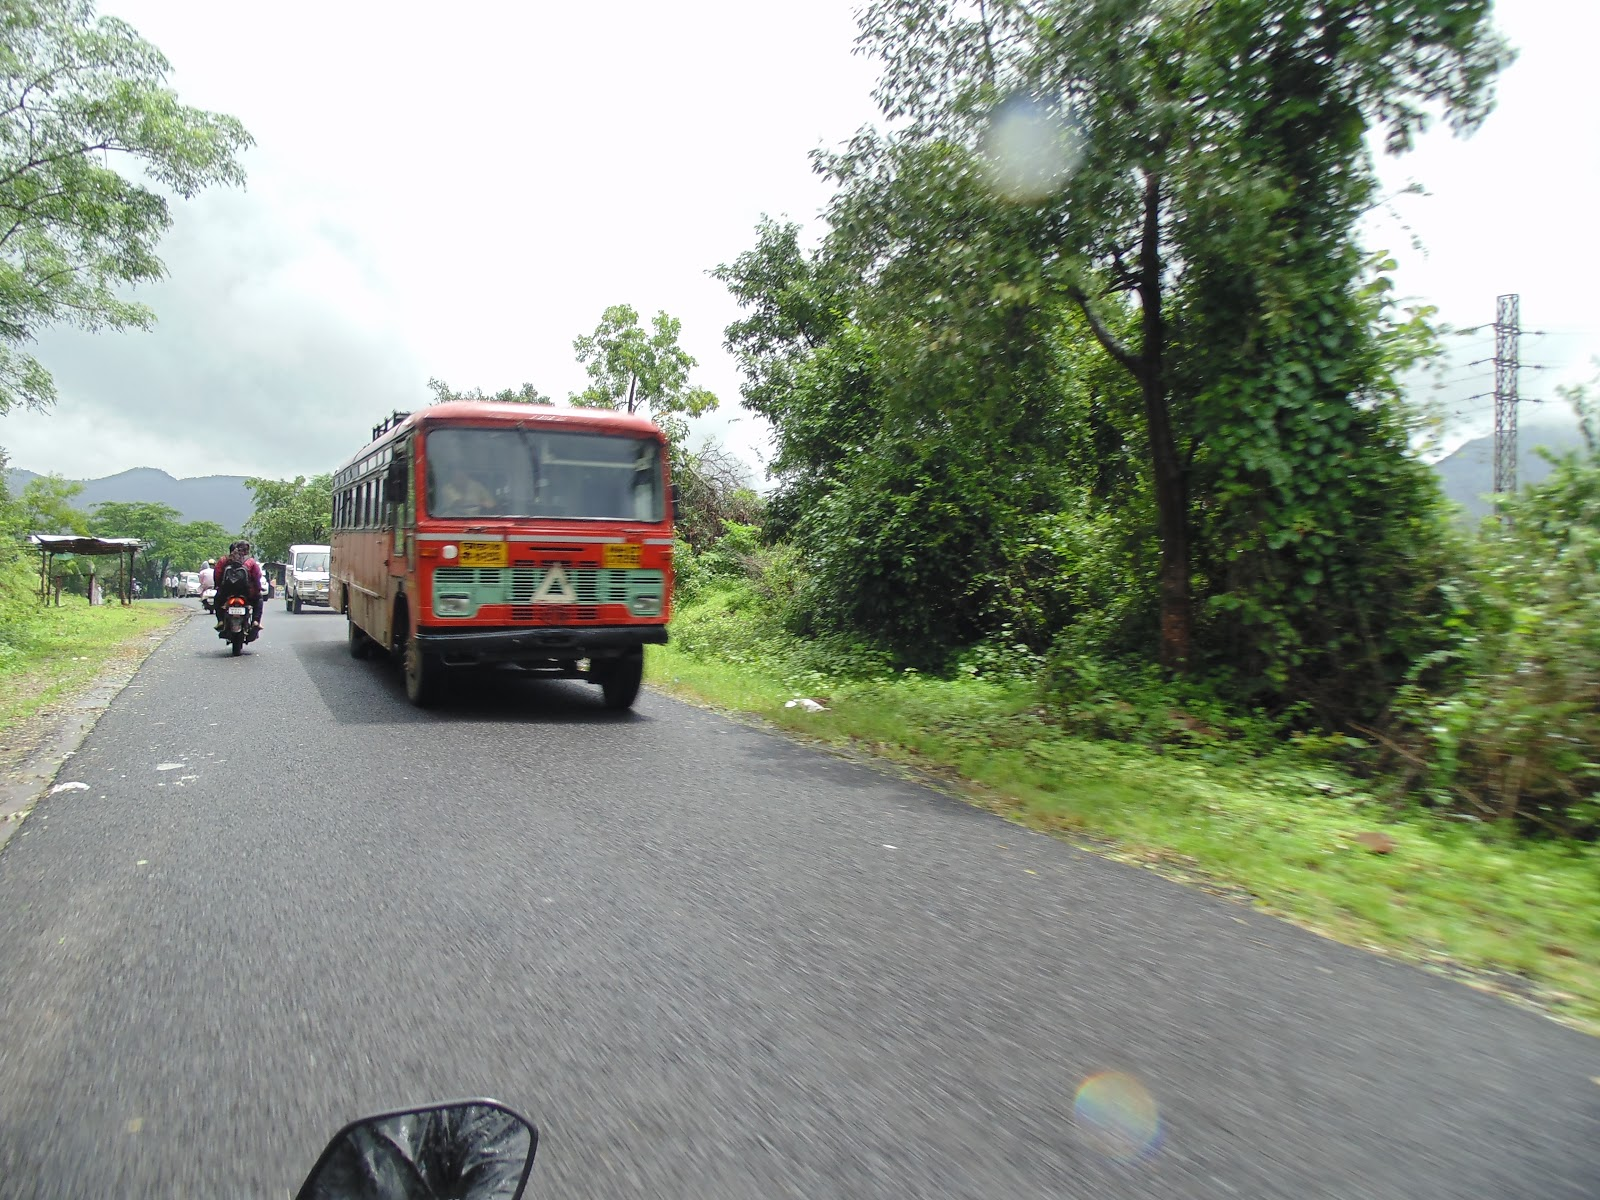 MSTRC bus on the way to Tamhini ghat from pune